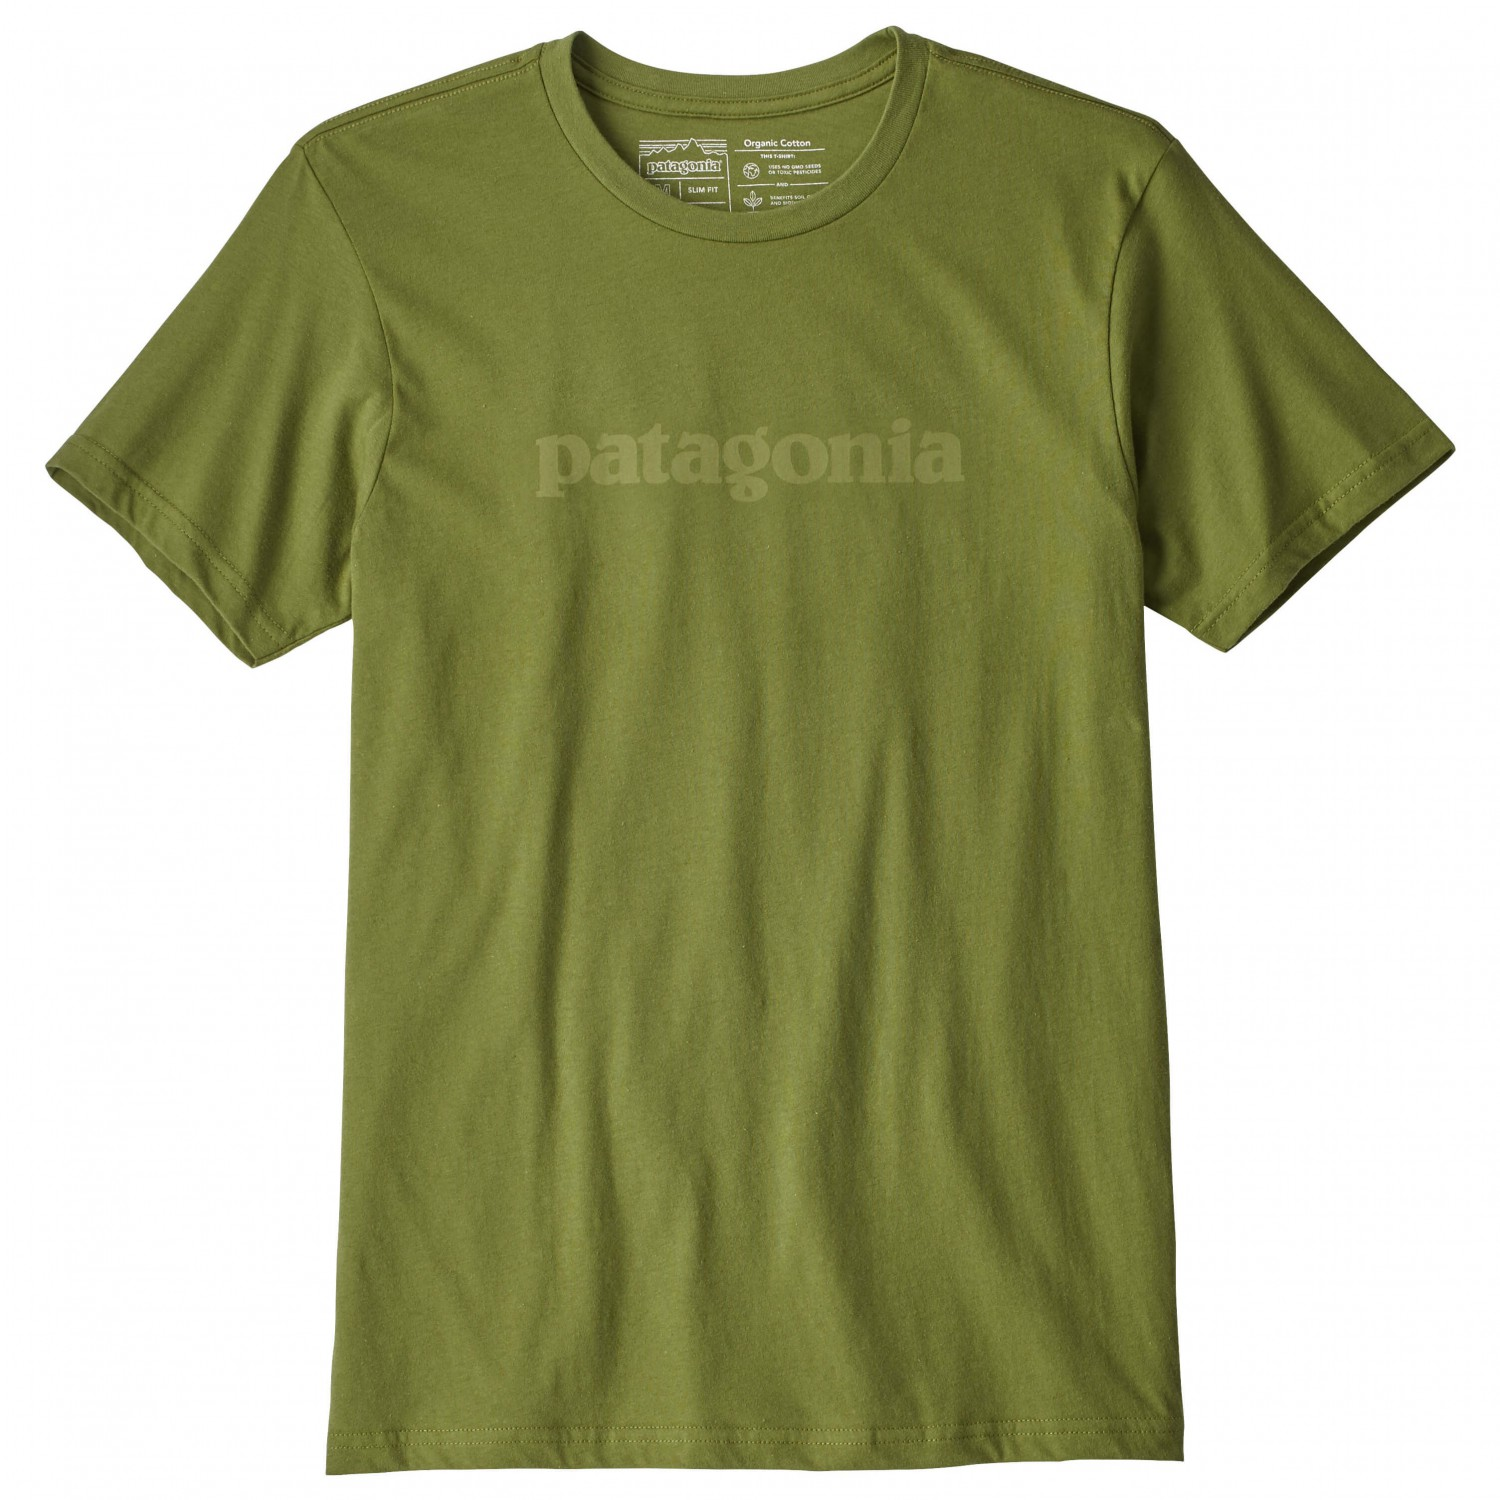 Patagonia text logo organic t shirt t shirt homme for Photo t shirts with text